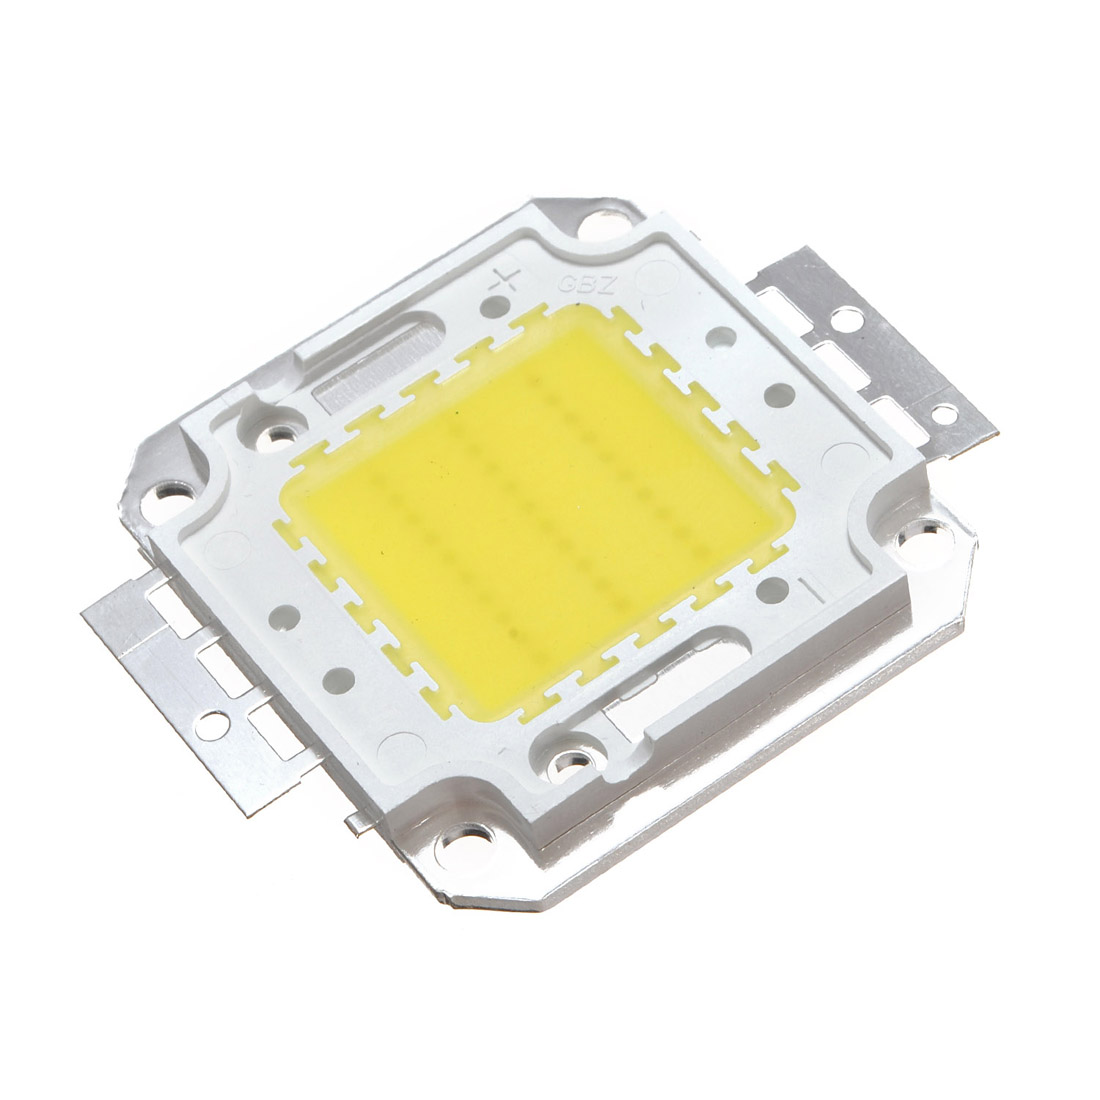 10w 20w 30w 50w led chip driver power supply for light lamp bulb 85 265v us ebay. Black Bedroom Furniture Sets. Home Design Ideas